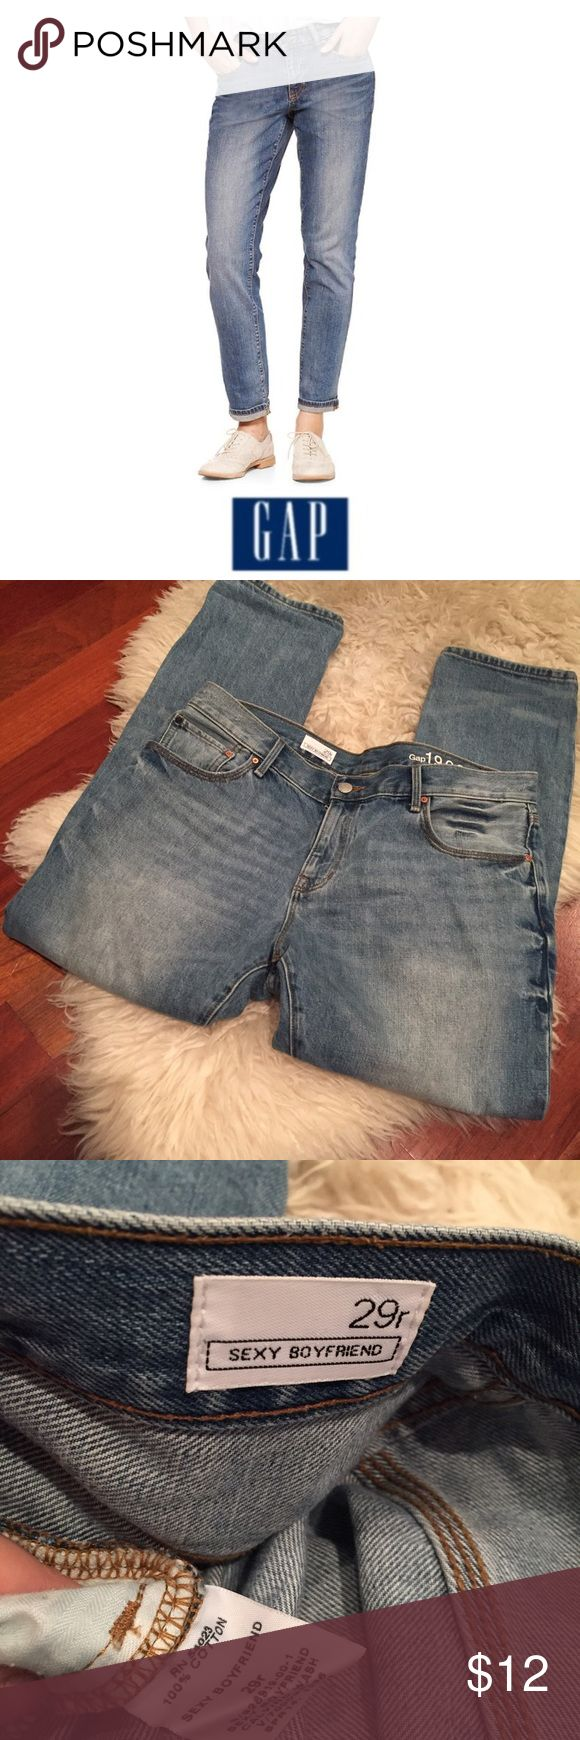 GAP Women's High Rise Sexy Boyfriend Jeans GAP Women's High Rise Sexy Boyfriend Jeans. 10.5 inch rise. 28 inch inseam, can also be worn cuffed. Size 29 which is an 8. Gently worn. Great condition. Feel free to make an offer or bundle & save! GAP Jeans Boyfriend